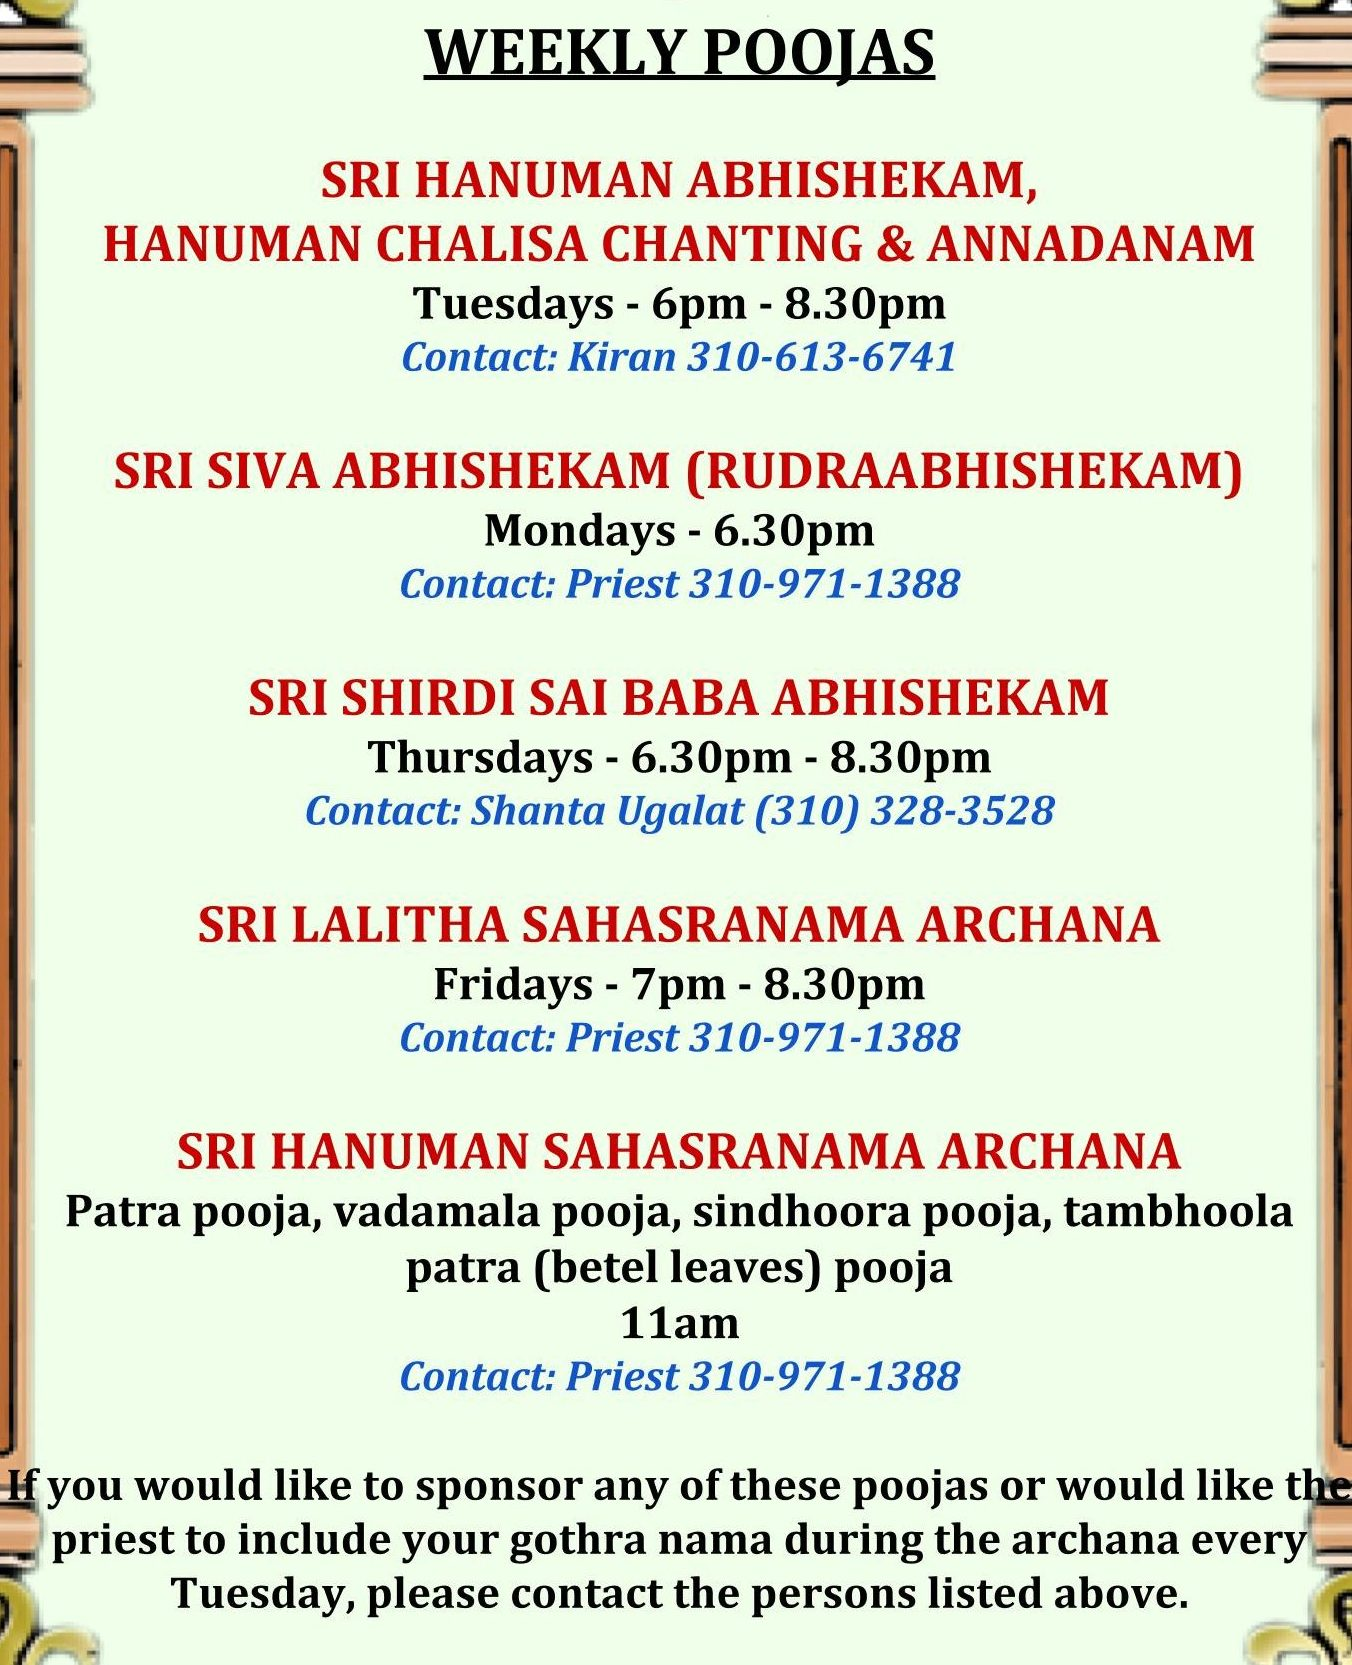 weekly poojas for email image (1)